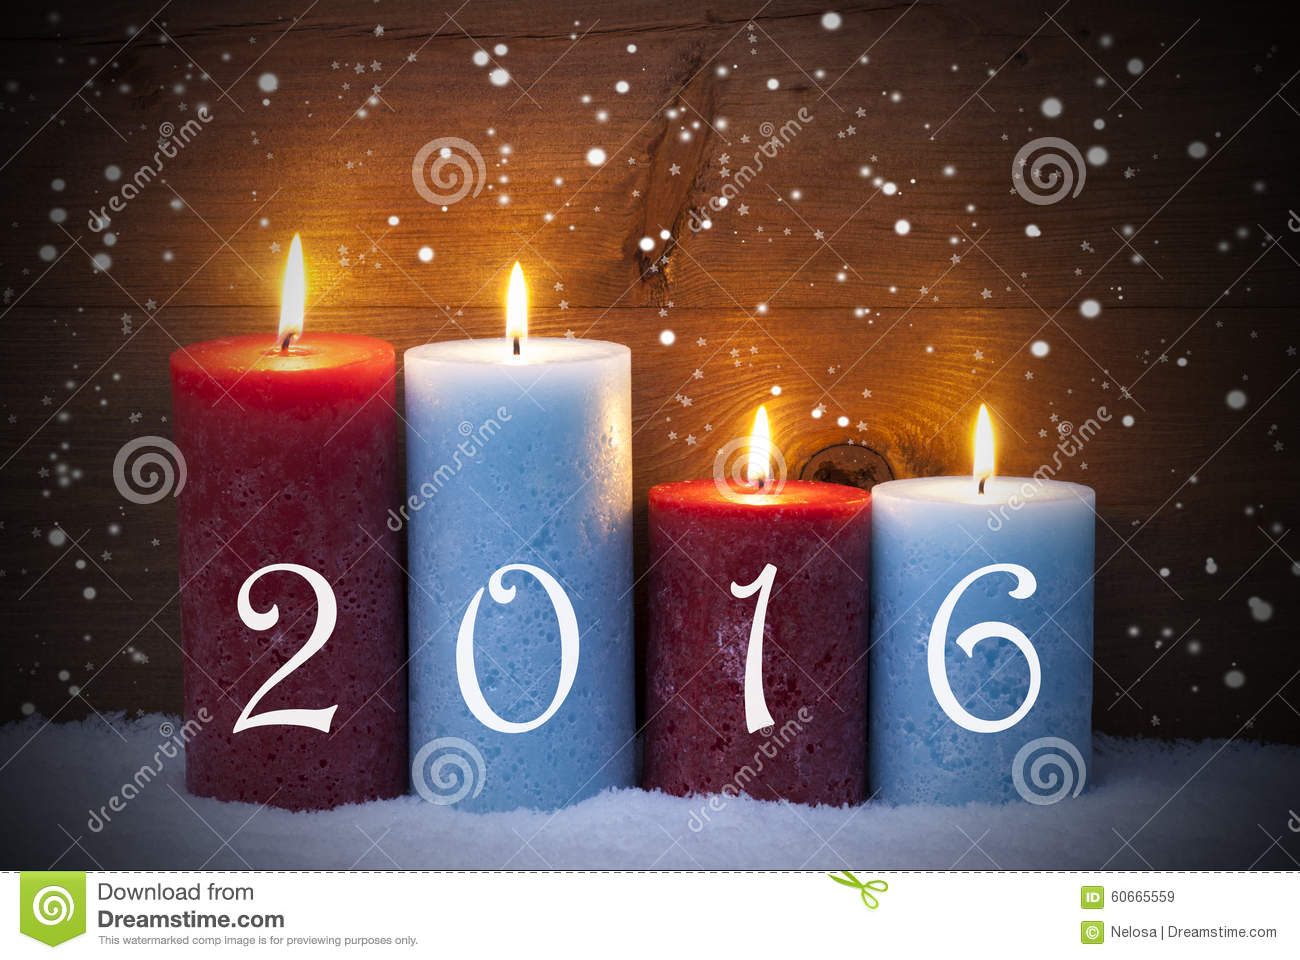 christmas card with four candles for advent 2016. Black Bedroom Furniture Sets. Home Design Ideas